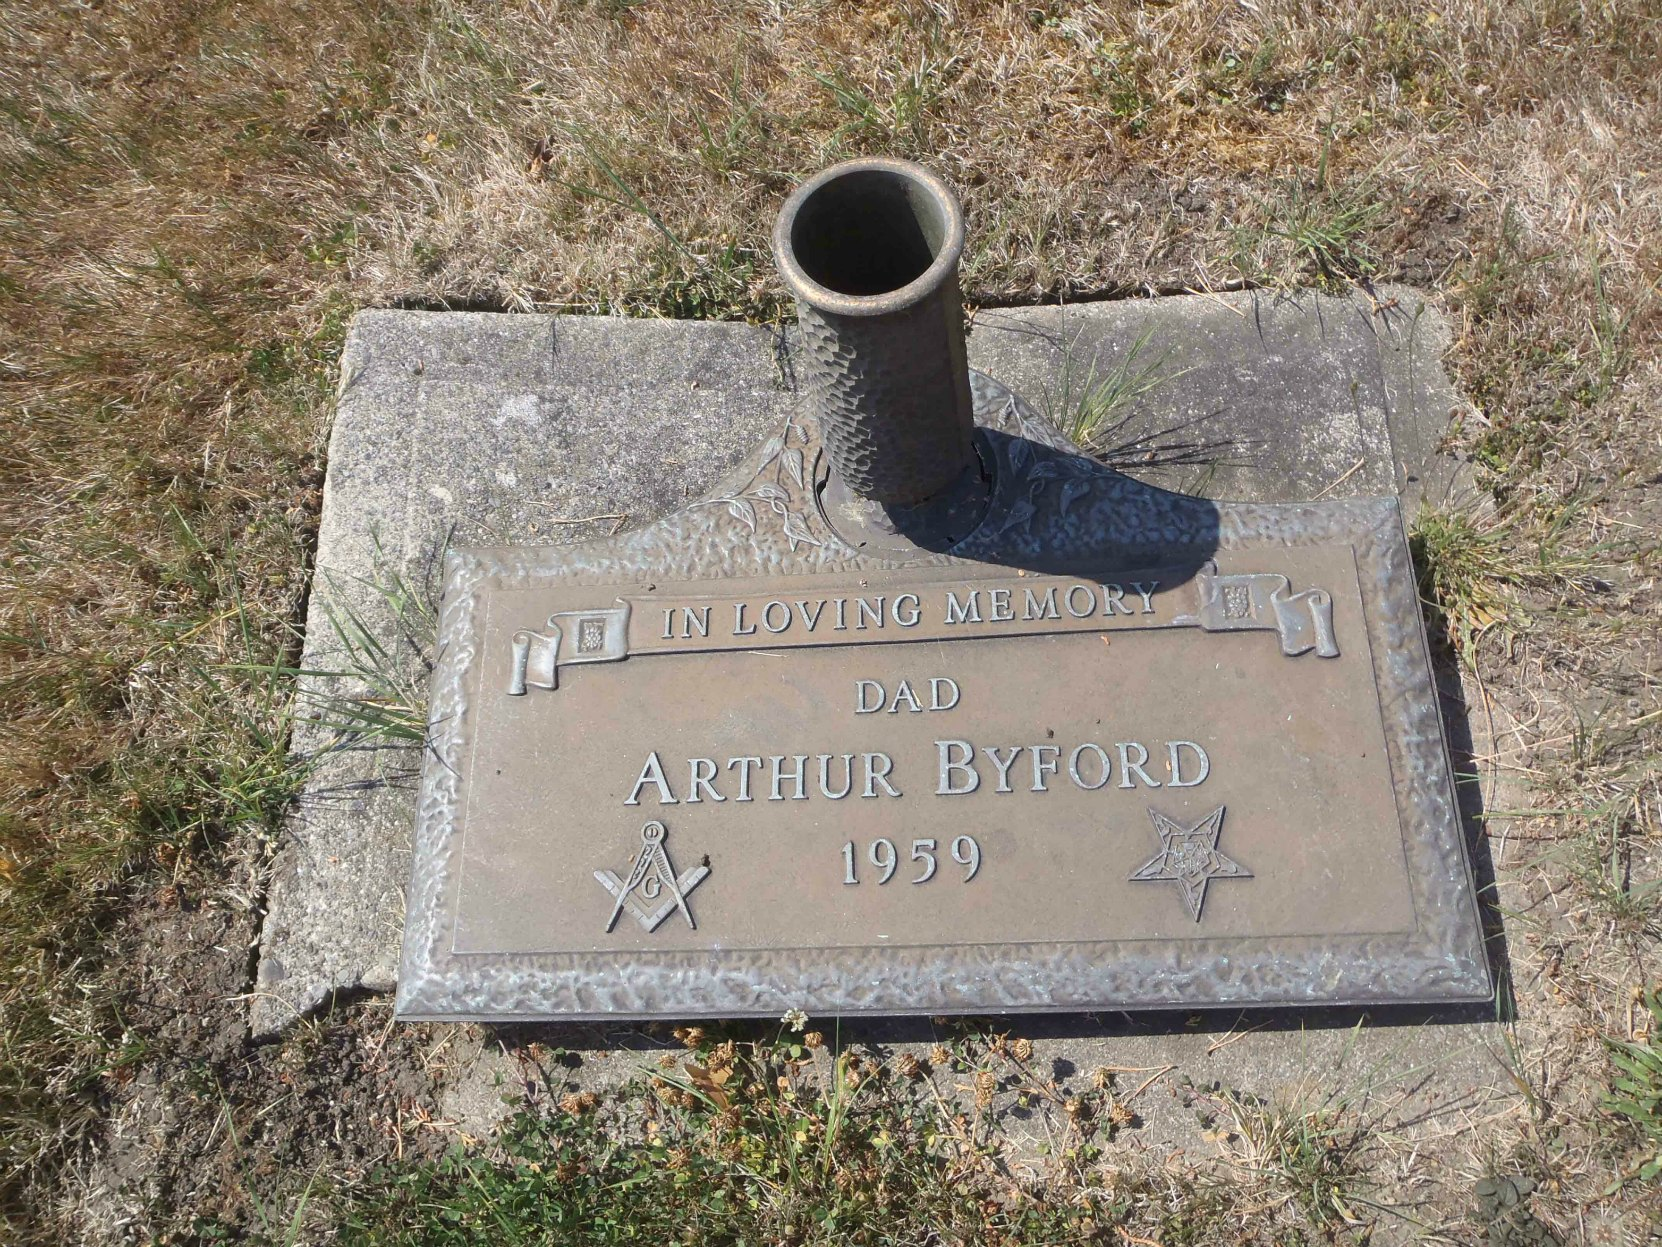 Arthur Byford grave marker, Holy Trinity Anglican cemetery, North Saanich, B.C.